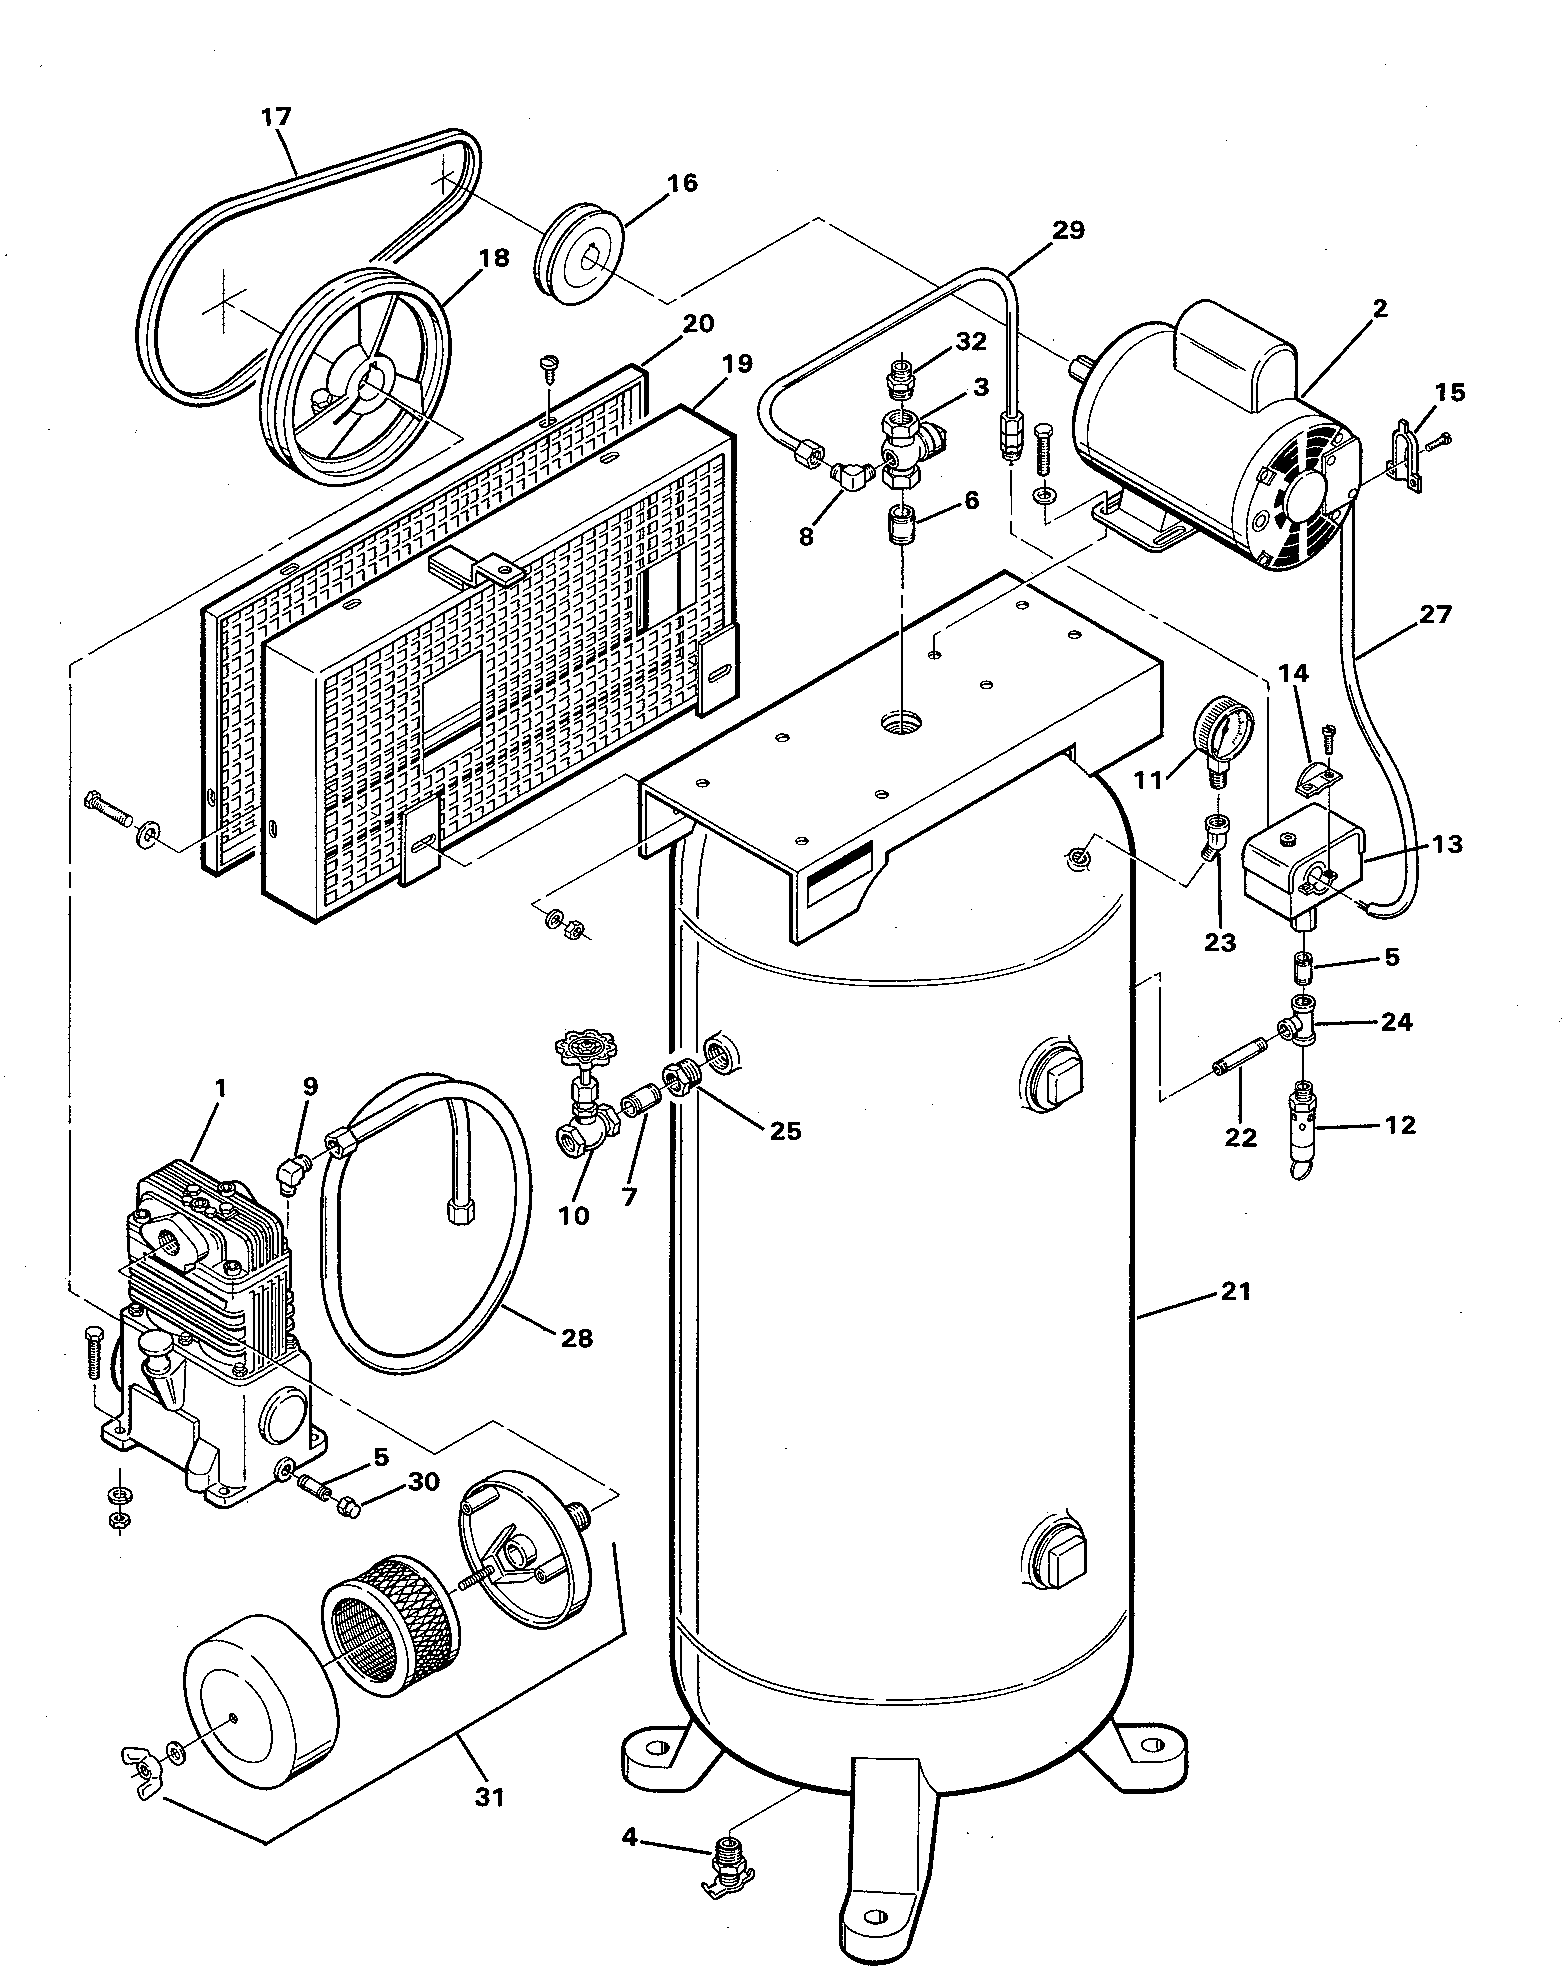 V3160 - Air Compressor Parts schematic